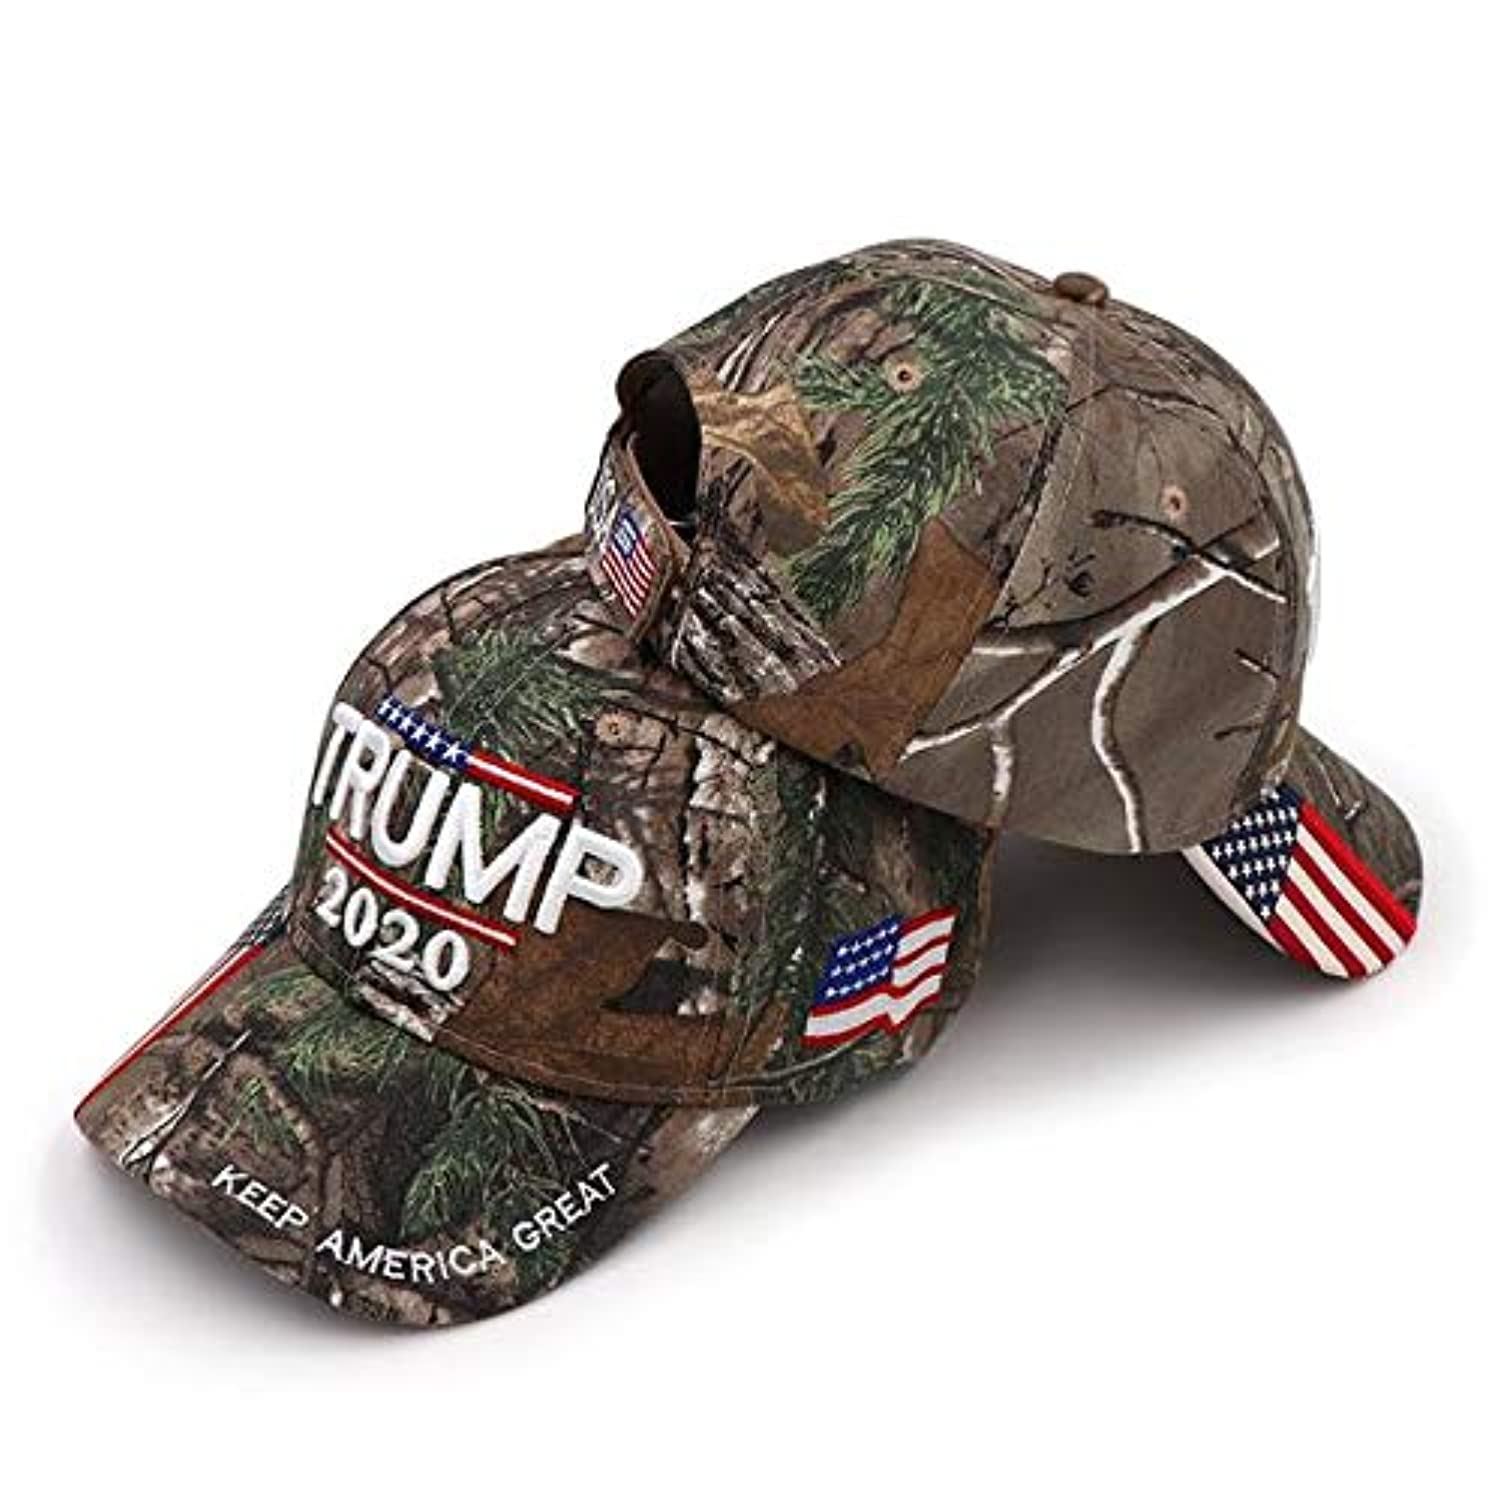 Classier: Buy Donald J. Trump Trump 2020 MAGA Camo Embroidered Hat Keep Make America Great Again Cap Made in USA